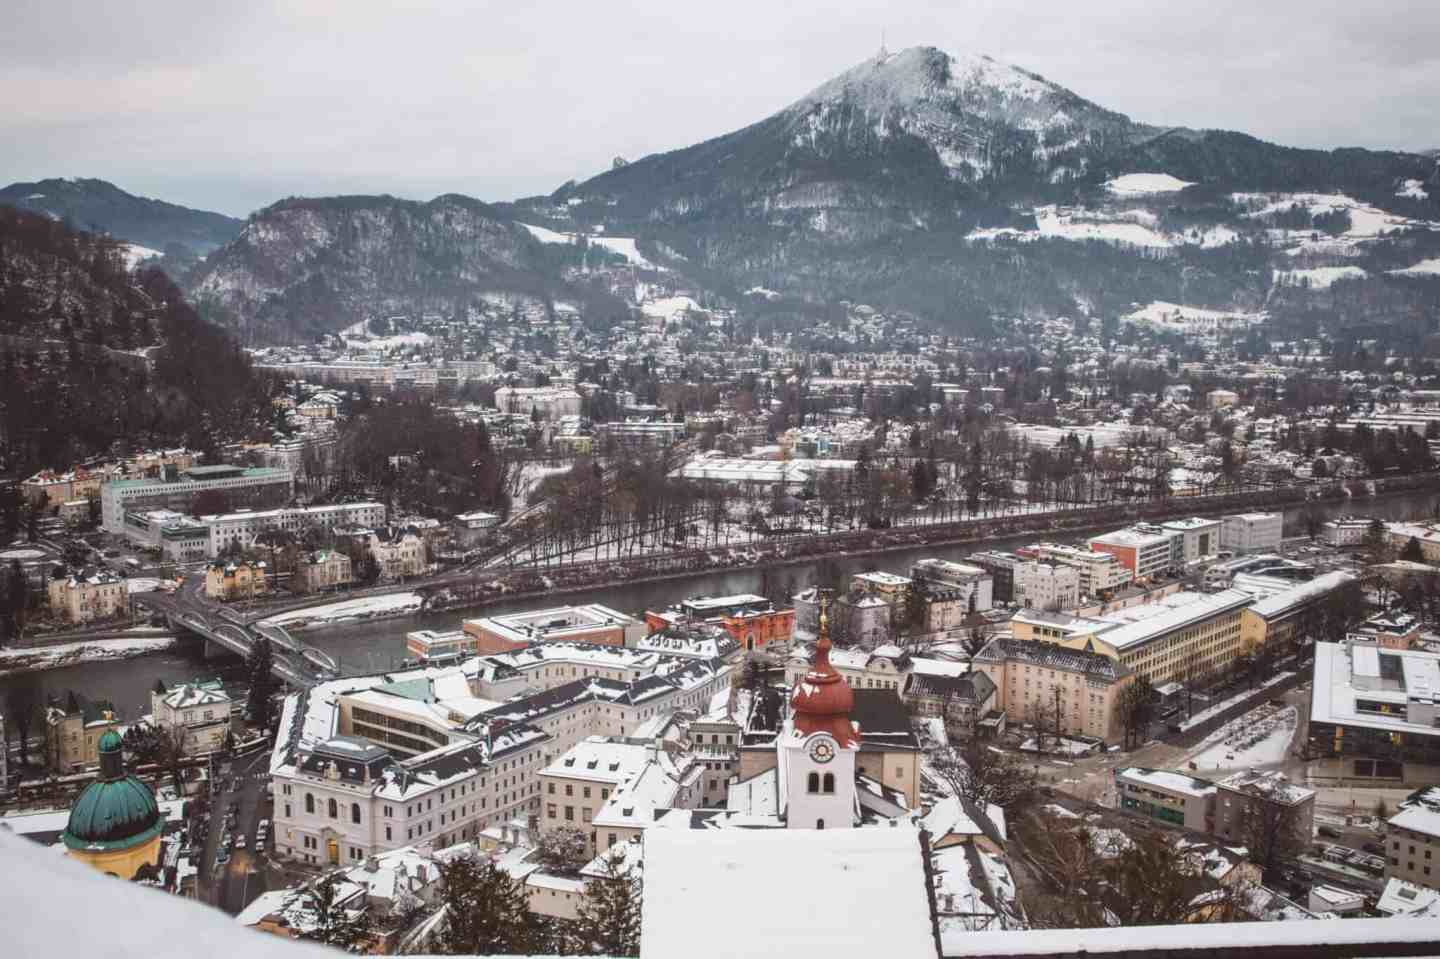 Views from the Fortress, Salzburg